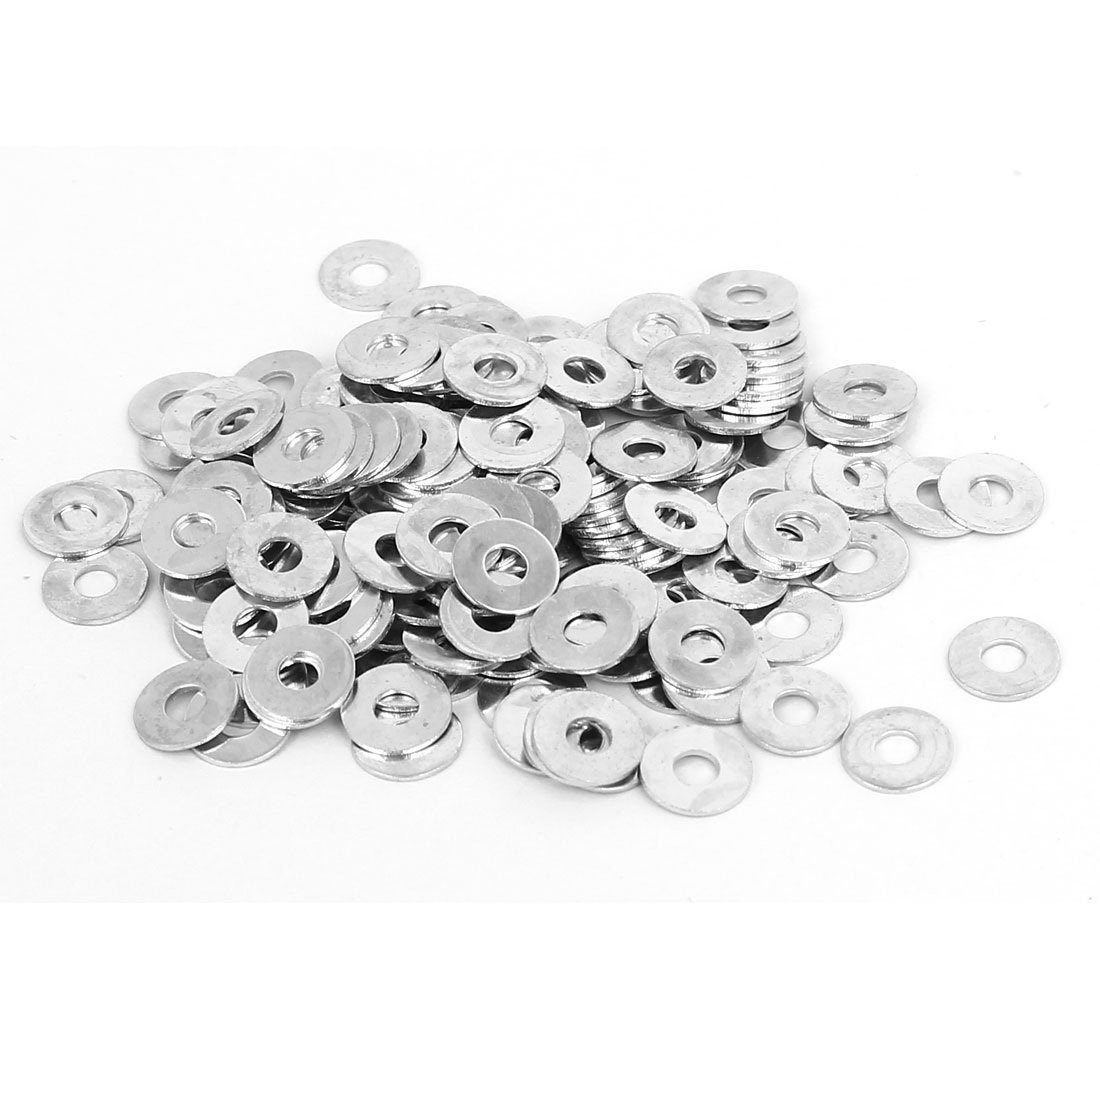 M2.5 x 7mm x 0.5mm White Zinc Plated Flat Washers Spacers Gaskets 200PCS